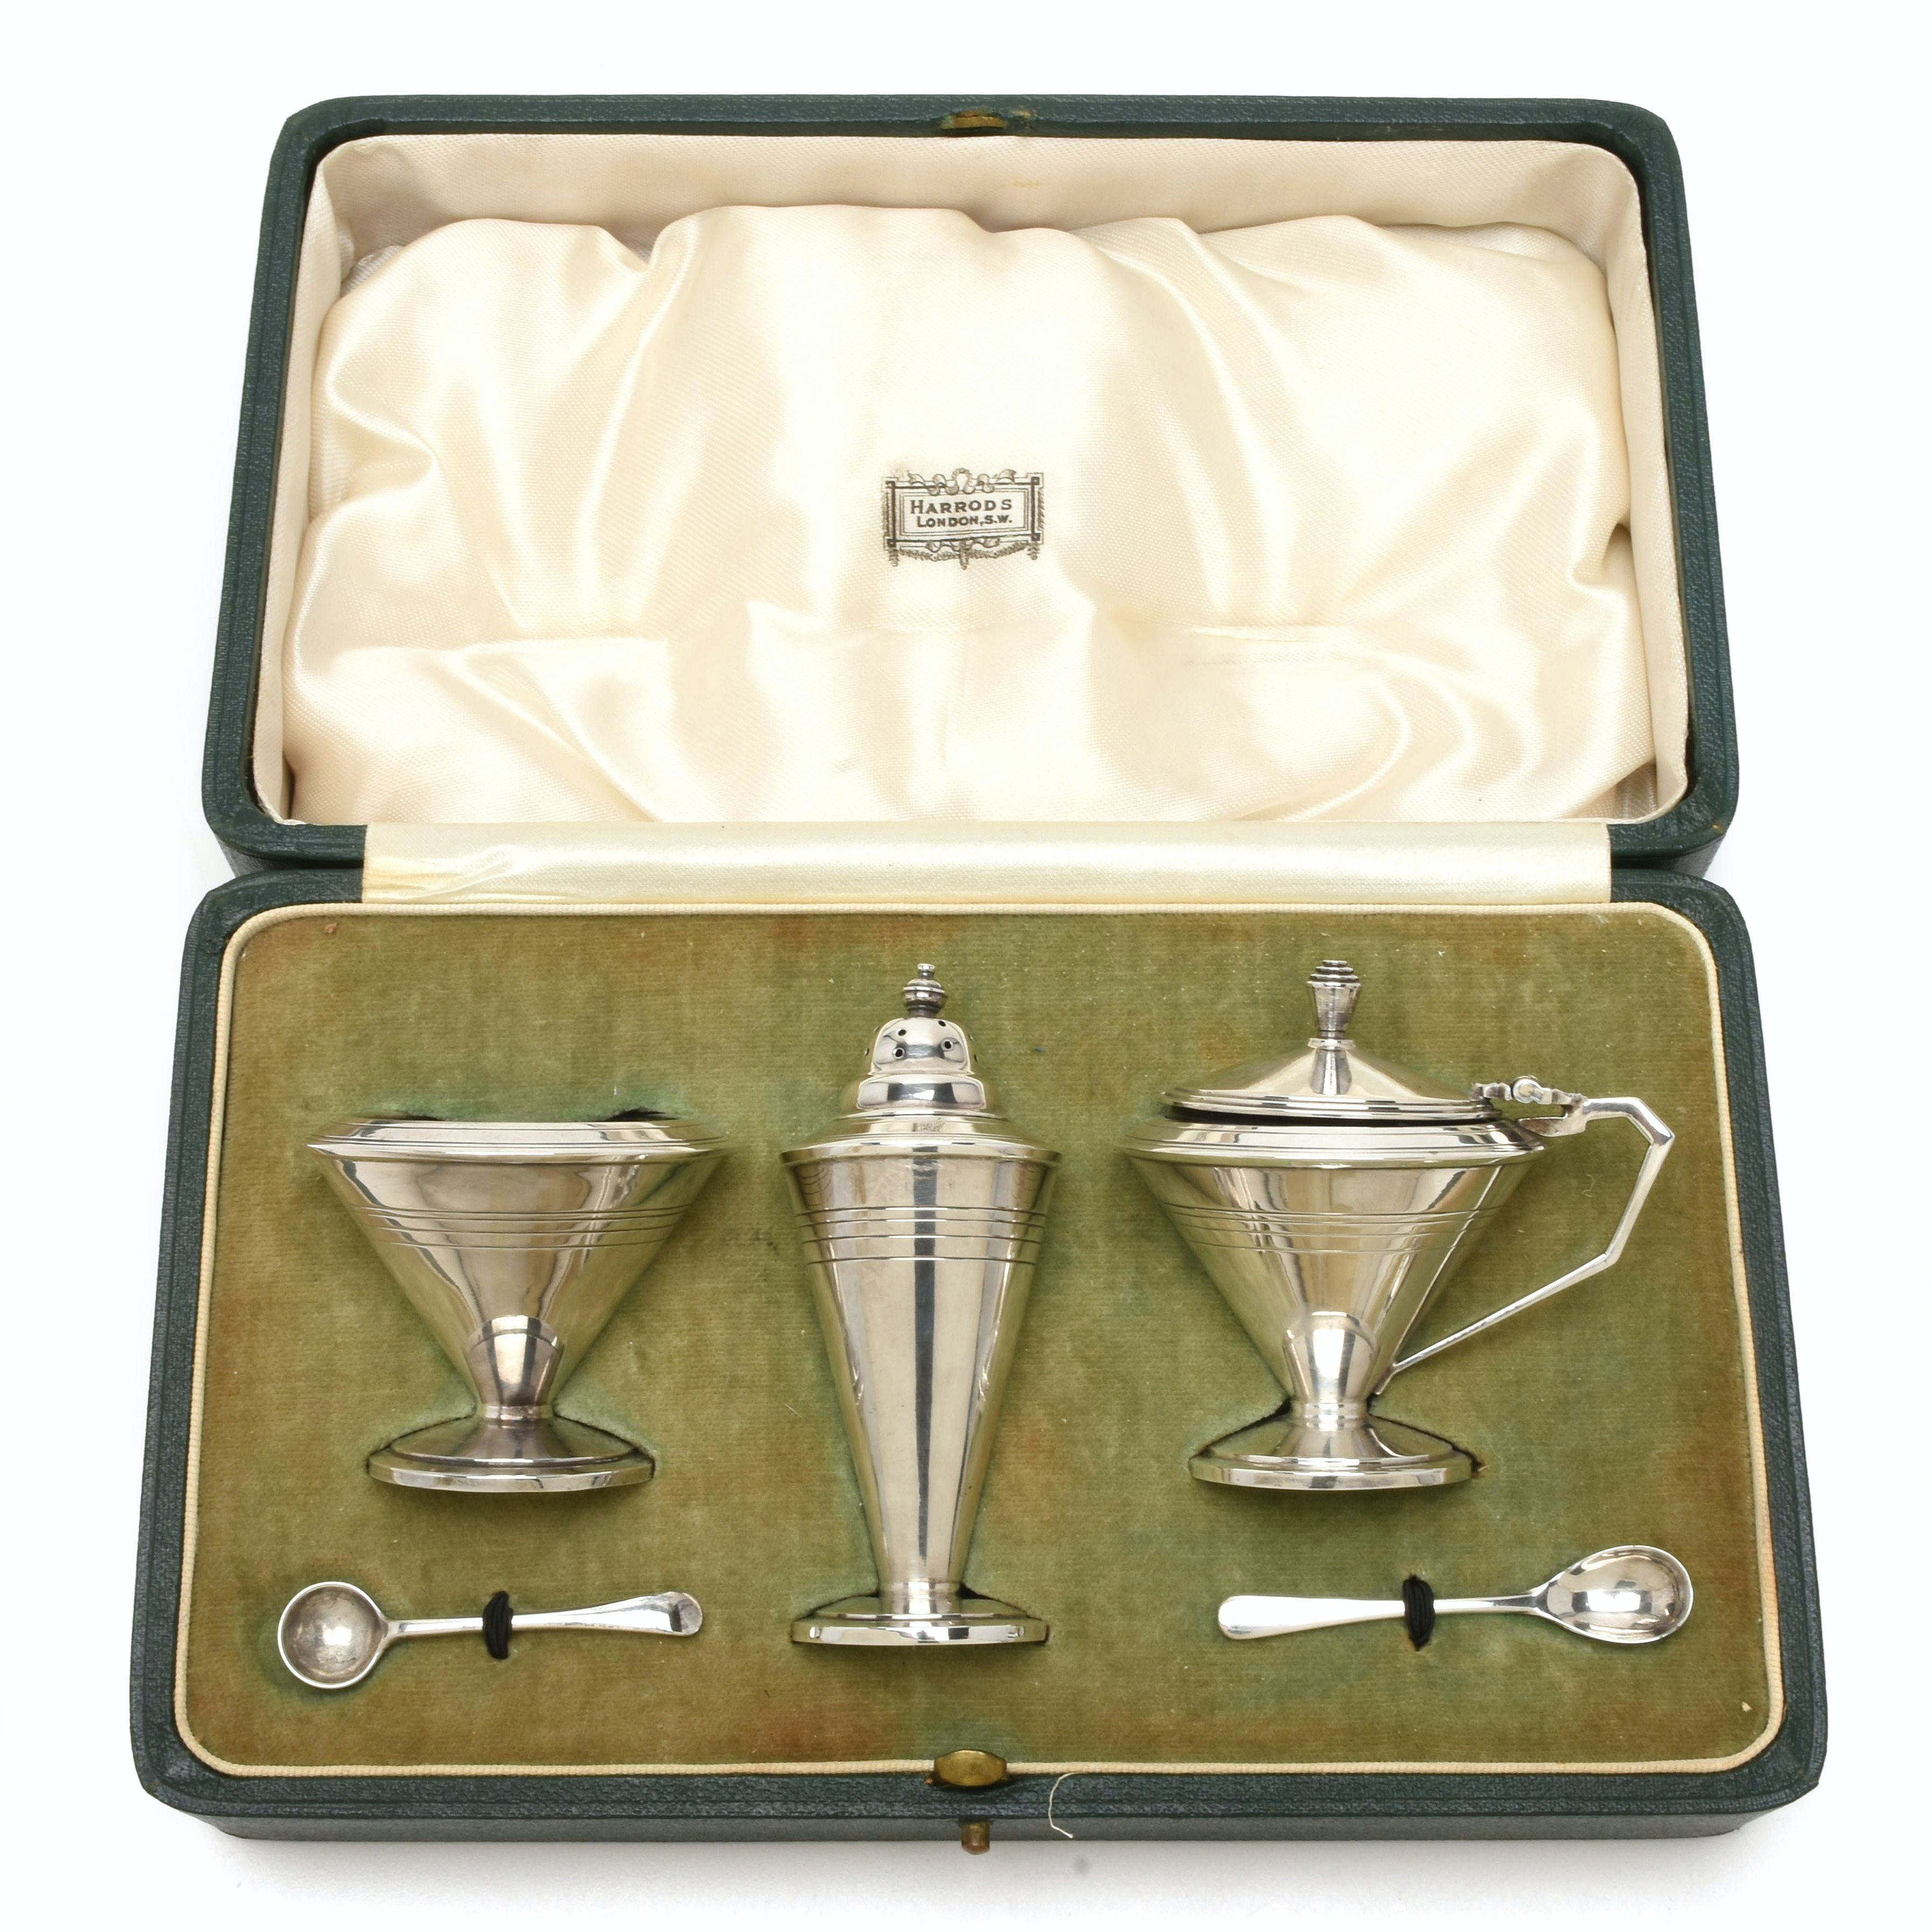 Early Twentieth Century Sterling Condiment Set from Harrods, London